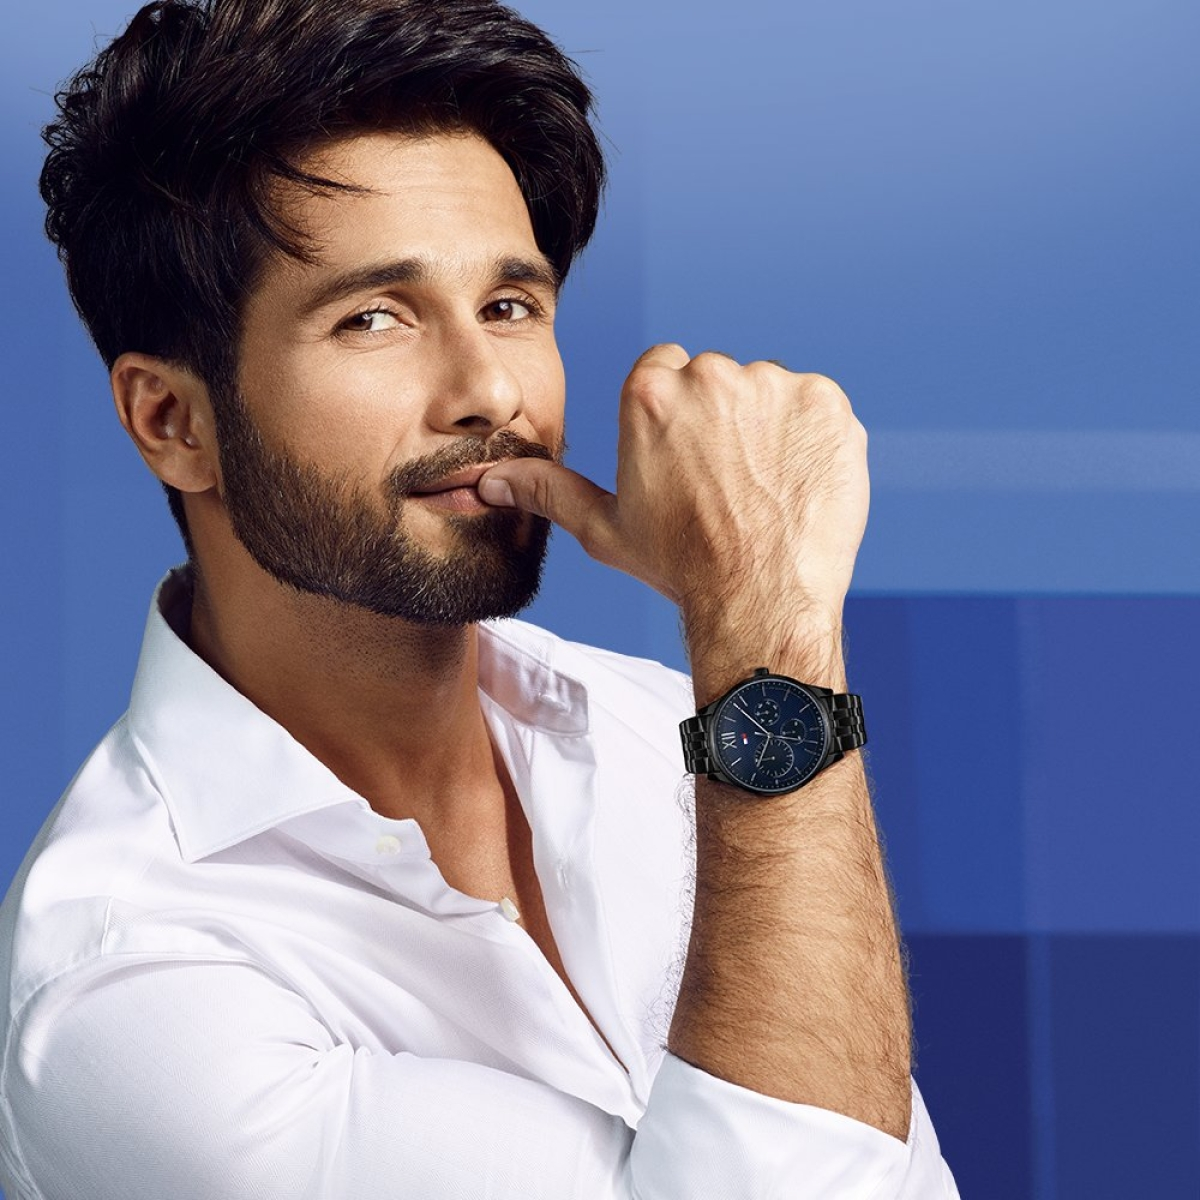 Cried four times after watching 'Jersey', says Shahid Kapoor